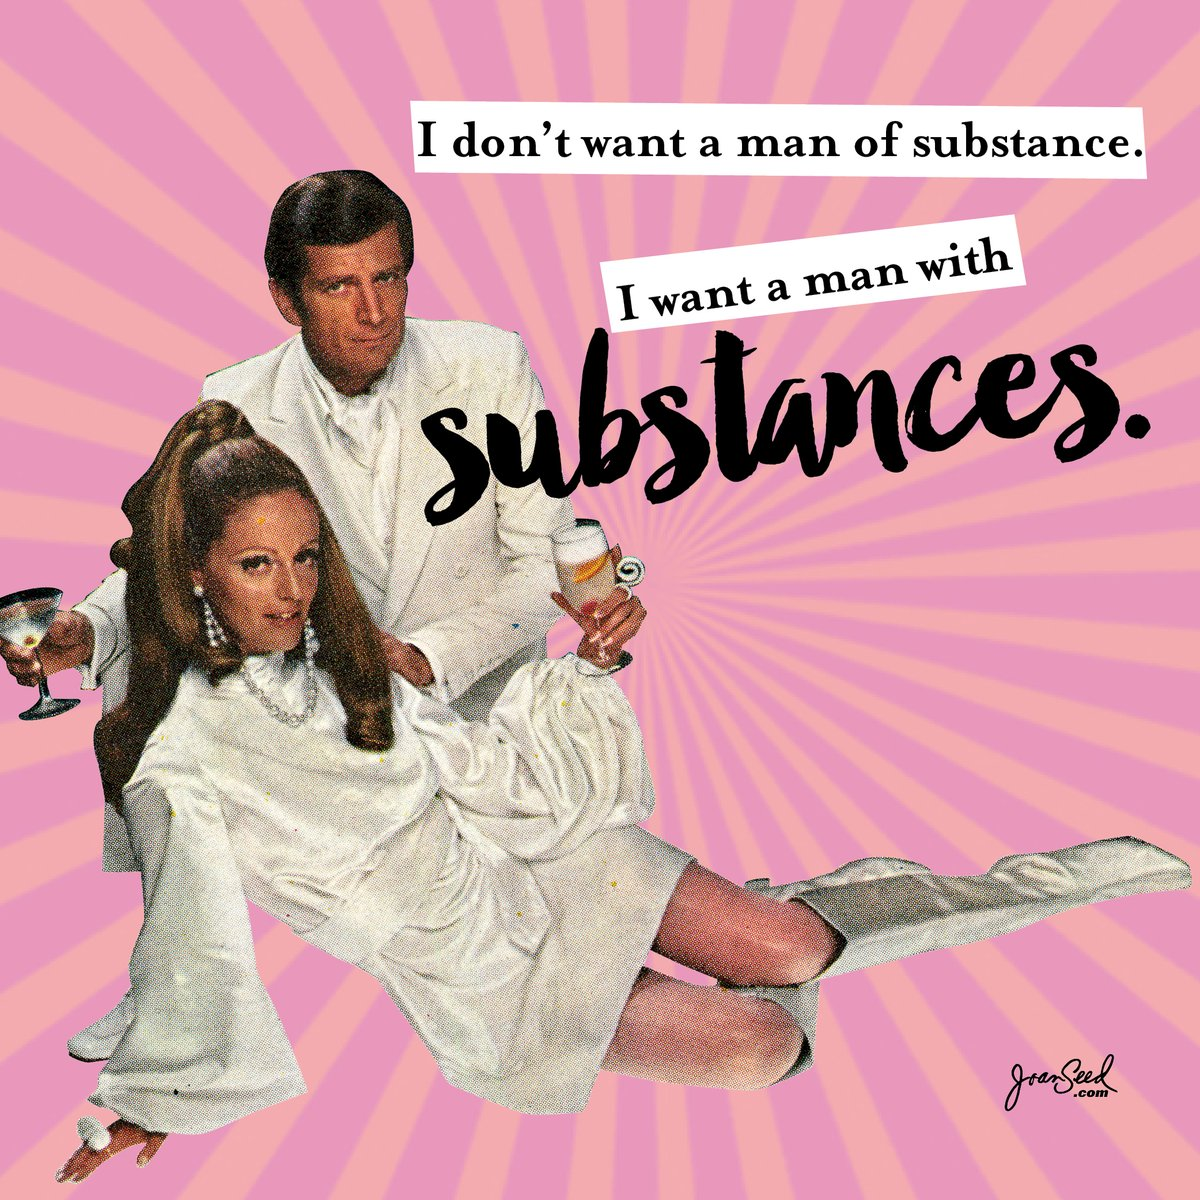 What's the fastest way to a girl's heart? Name your favourite substance.𝙭𝙅𝙤𝙖𝙣 #fridaynightvibes #couplegoals#cutelove #playonwords #memesdank #swaggirl #swagstylepic.twitter.com/dO85fEbCxQ